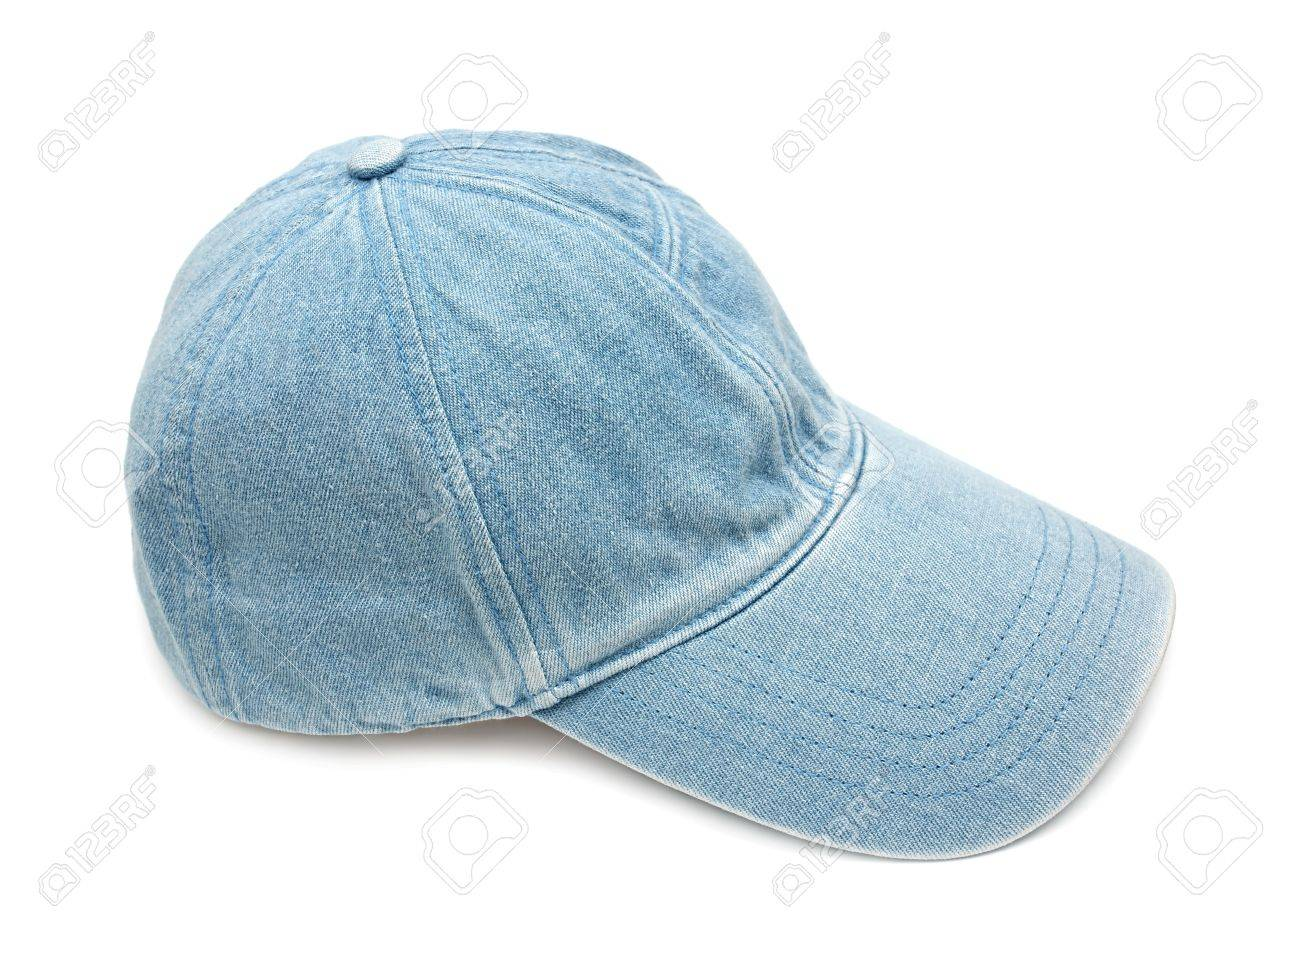 Blue jean fabric cap on white background Stock Photo - 20283696 c78d779ae1a